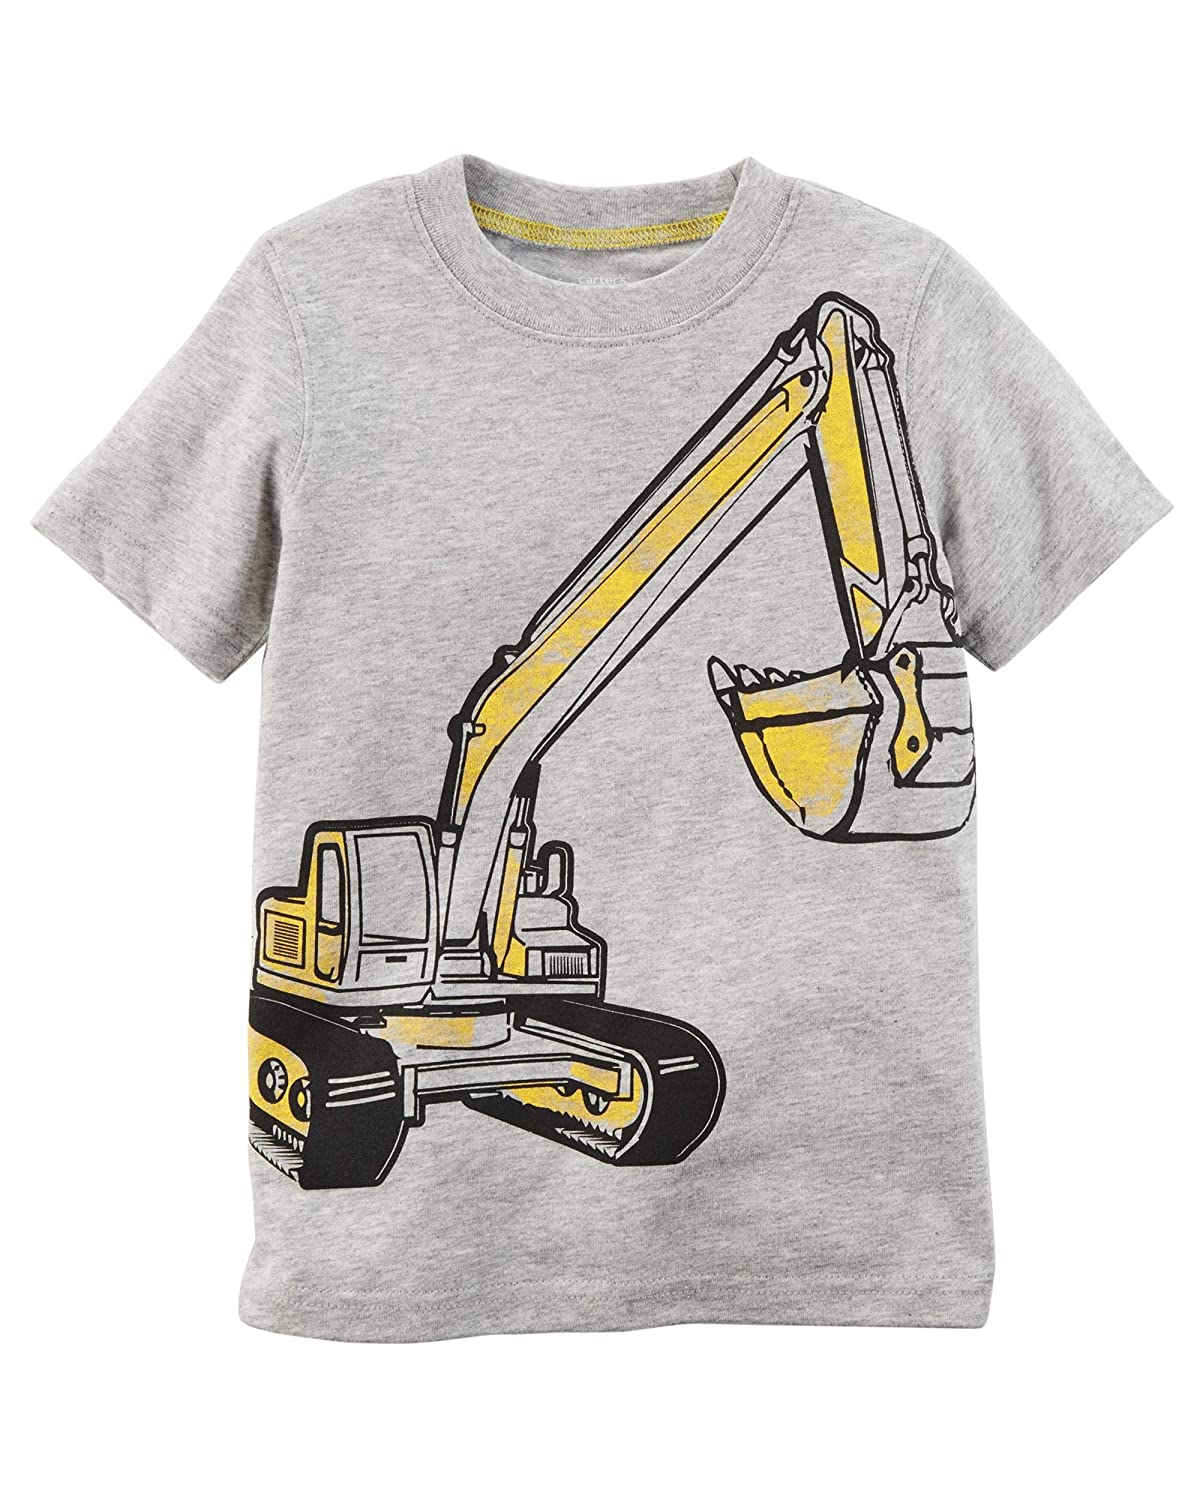 Carters Boys Backhoe Construction Jersey Tee 18m Gray